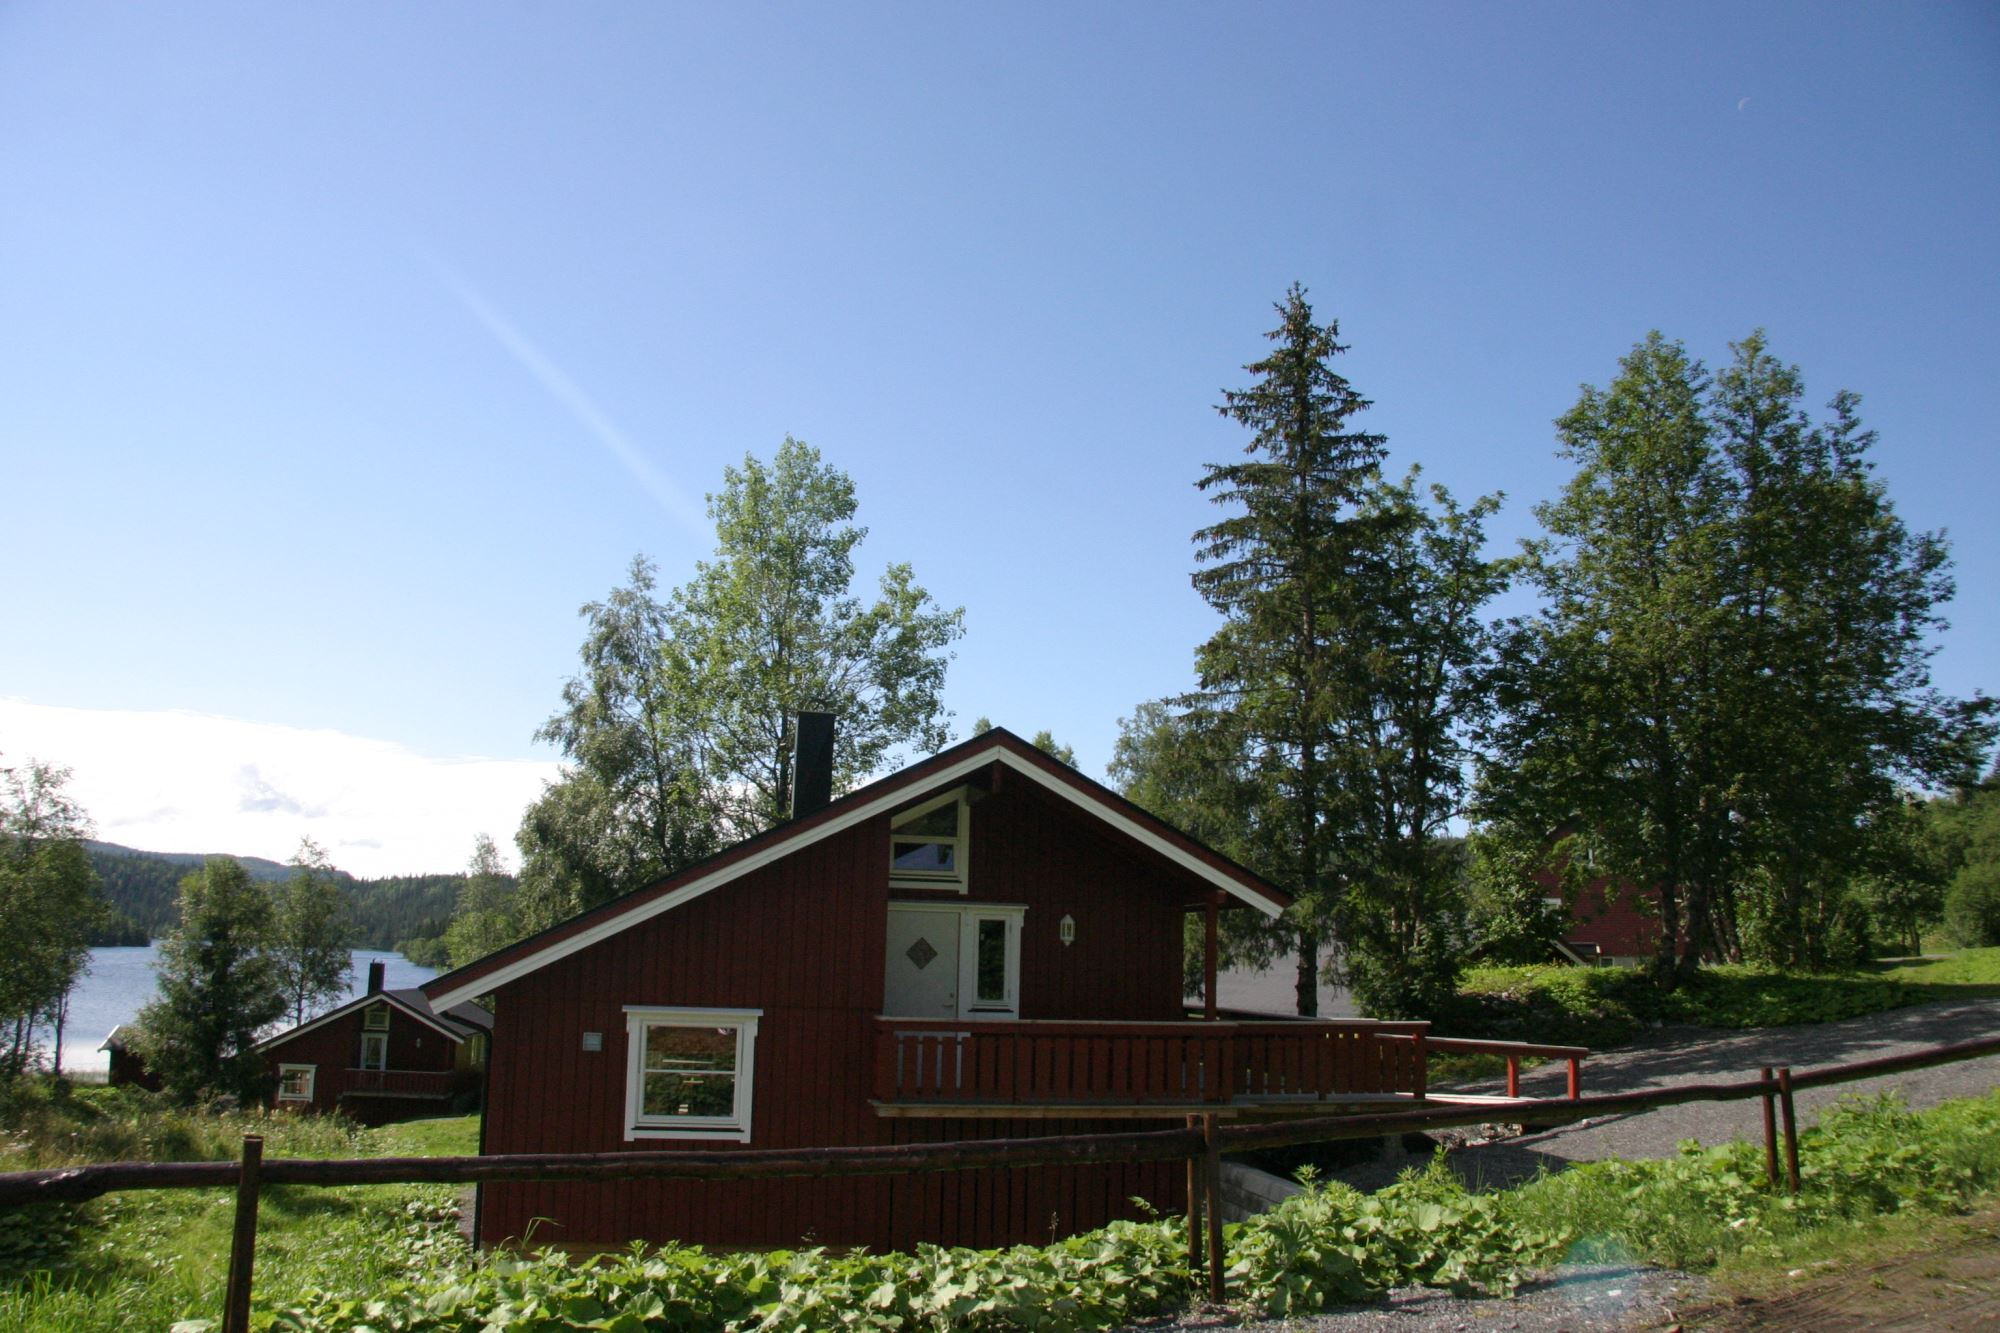 Vassenget accommodation